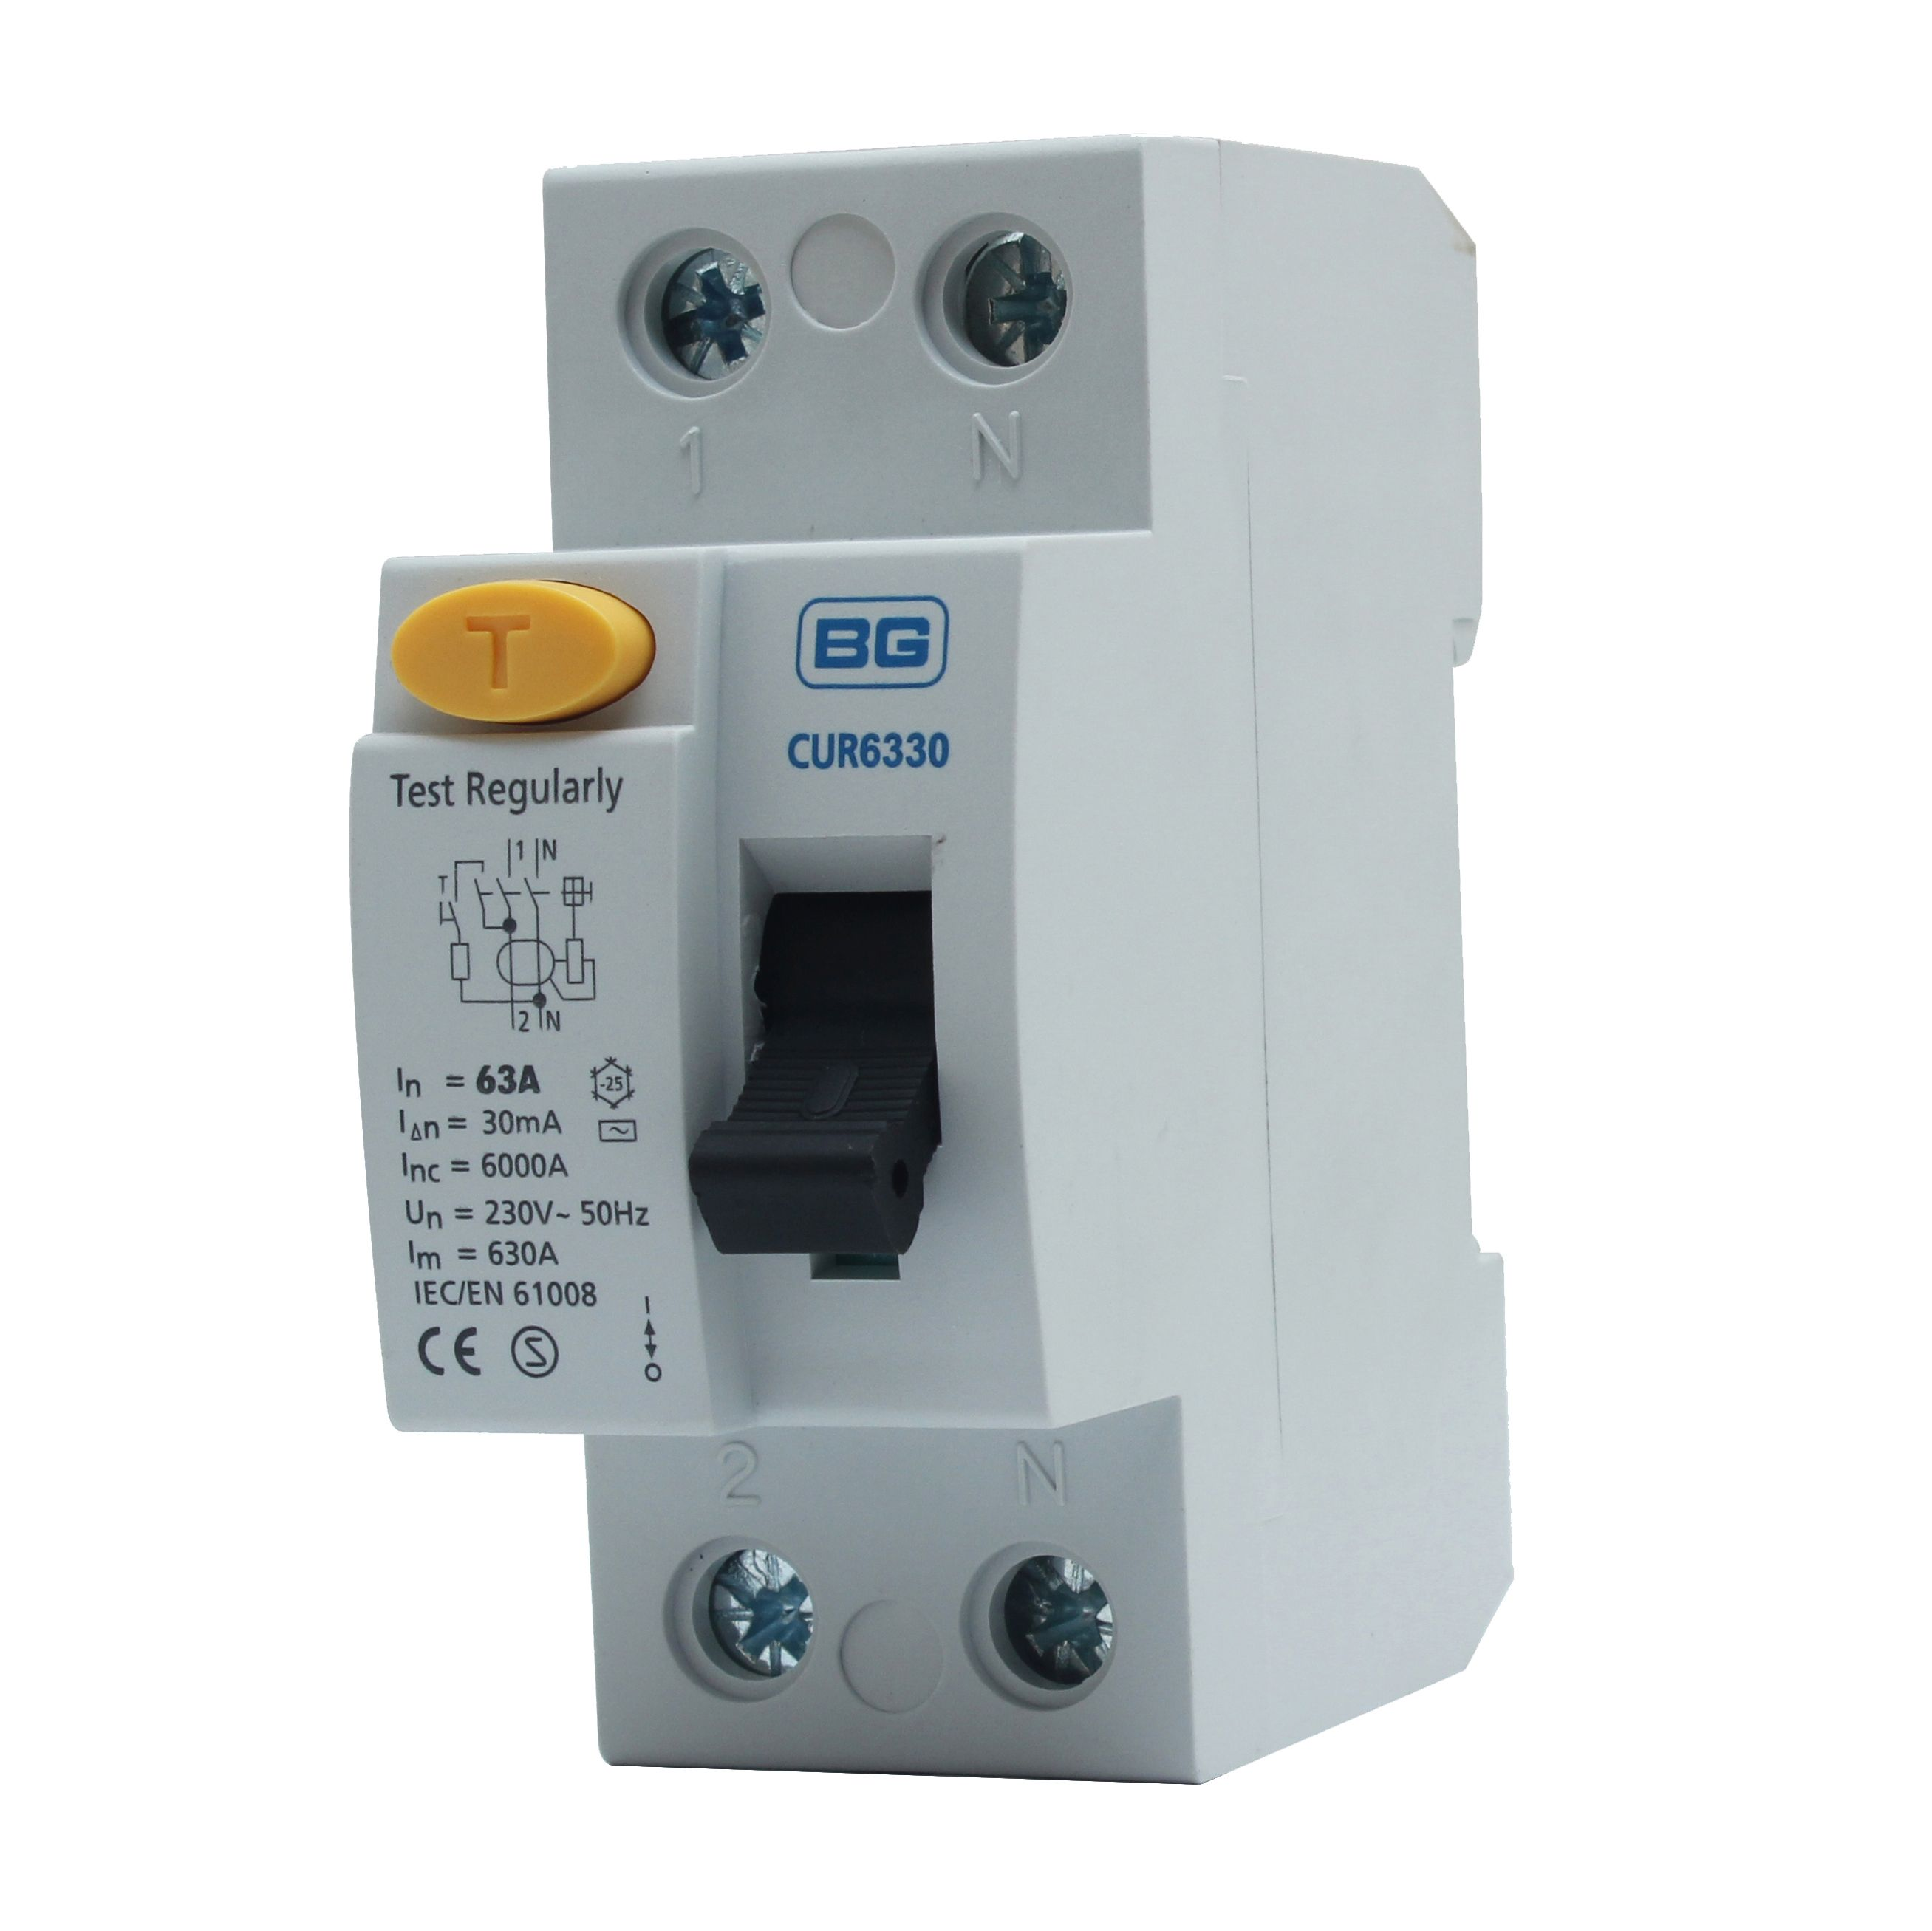 bg 63a double pole 230 400v 30ma rcd departments diy at b q rh diy com RCD Circuit Breaker Electrical Wiring